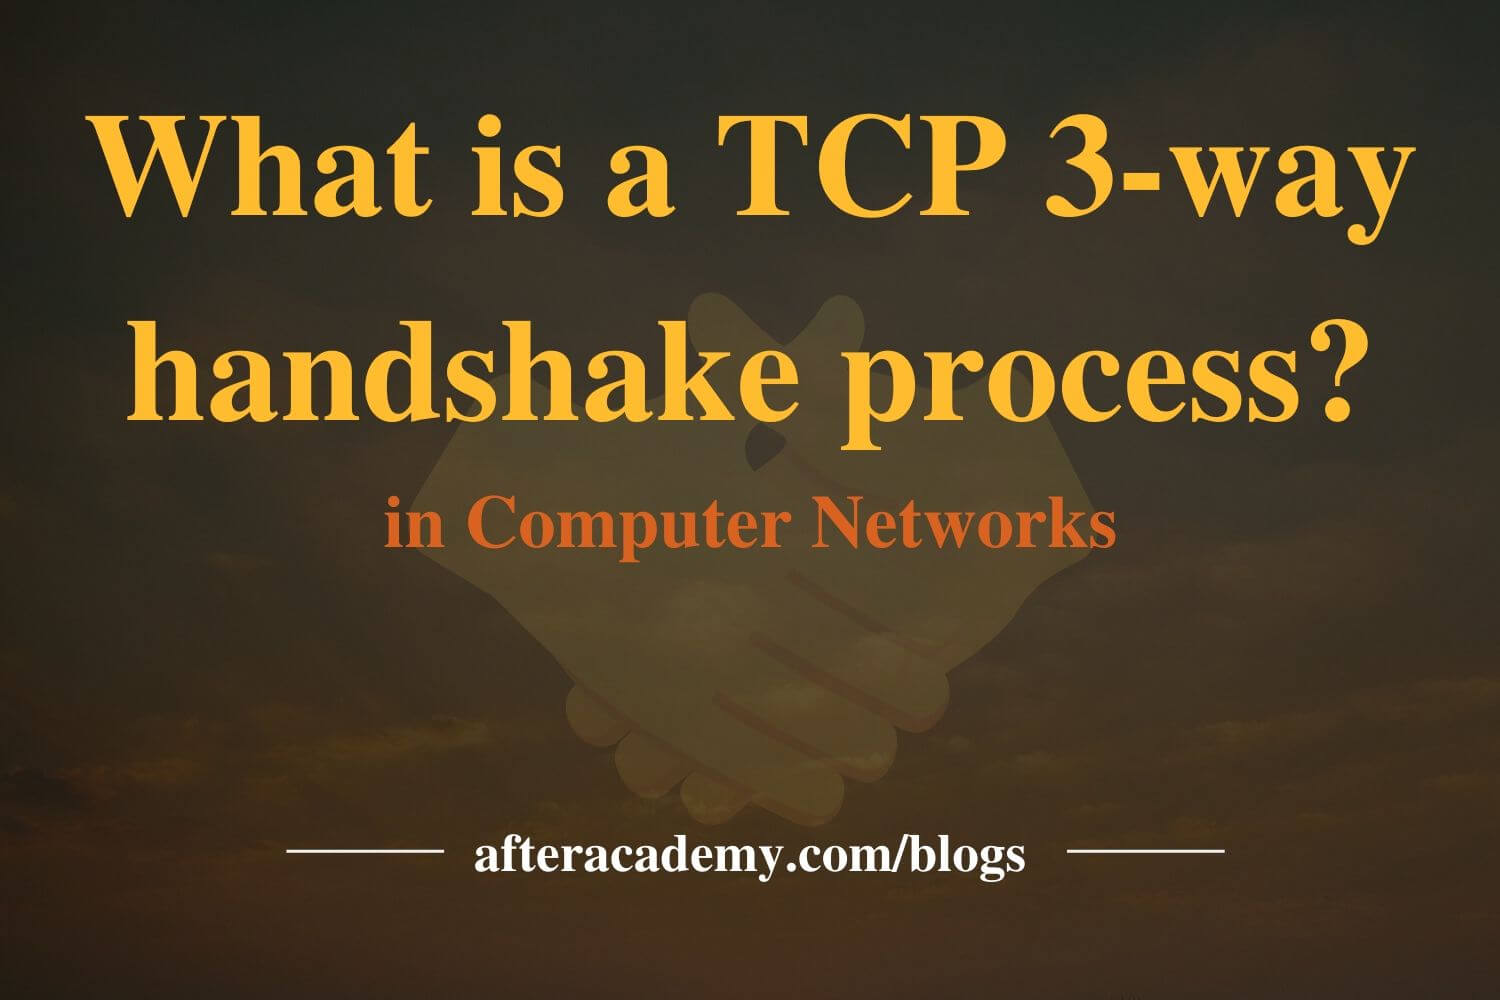 What is a TCP 3-way handshake process?